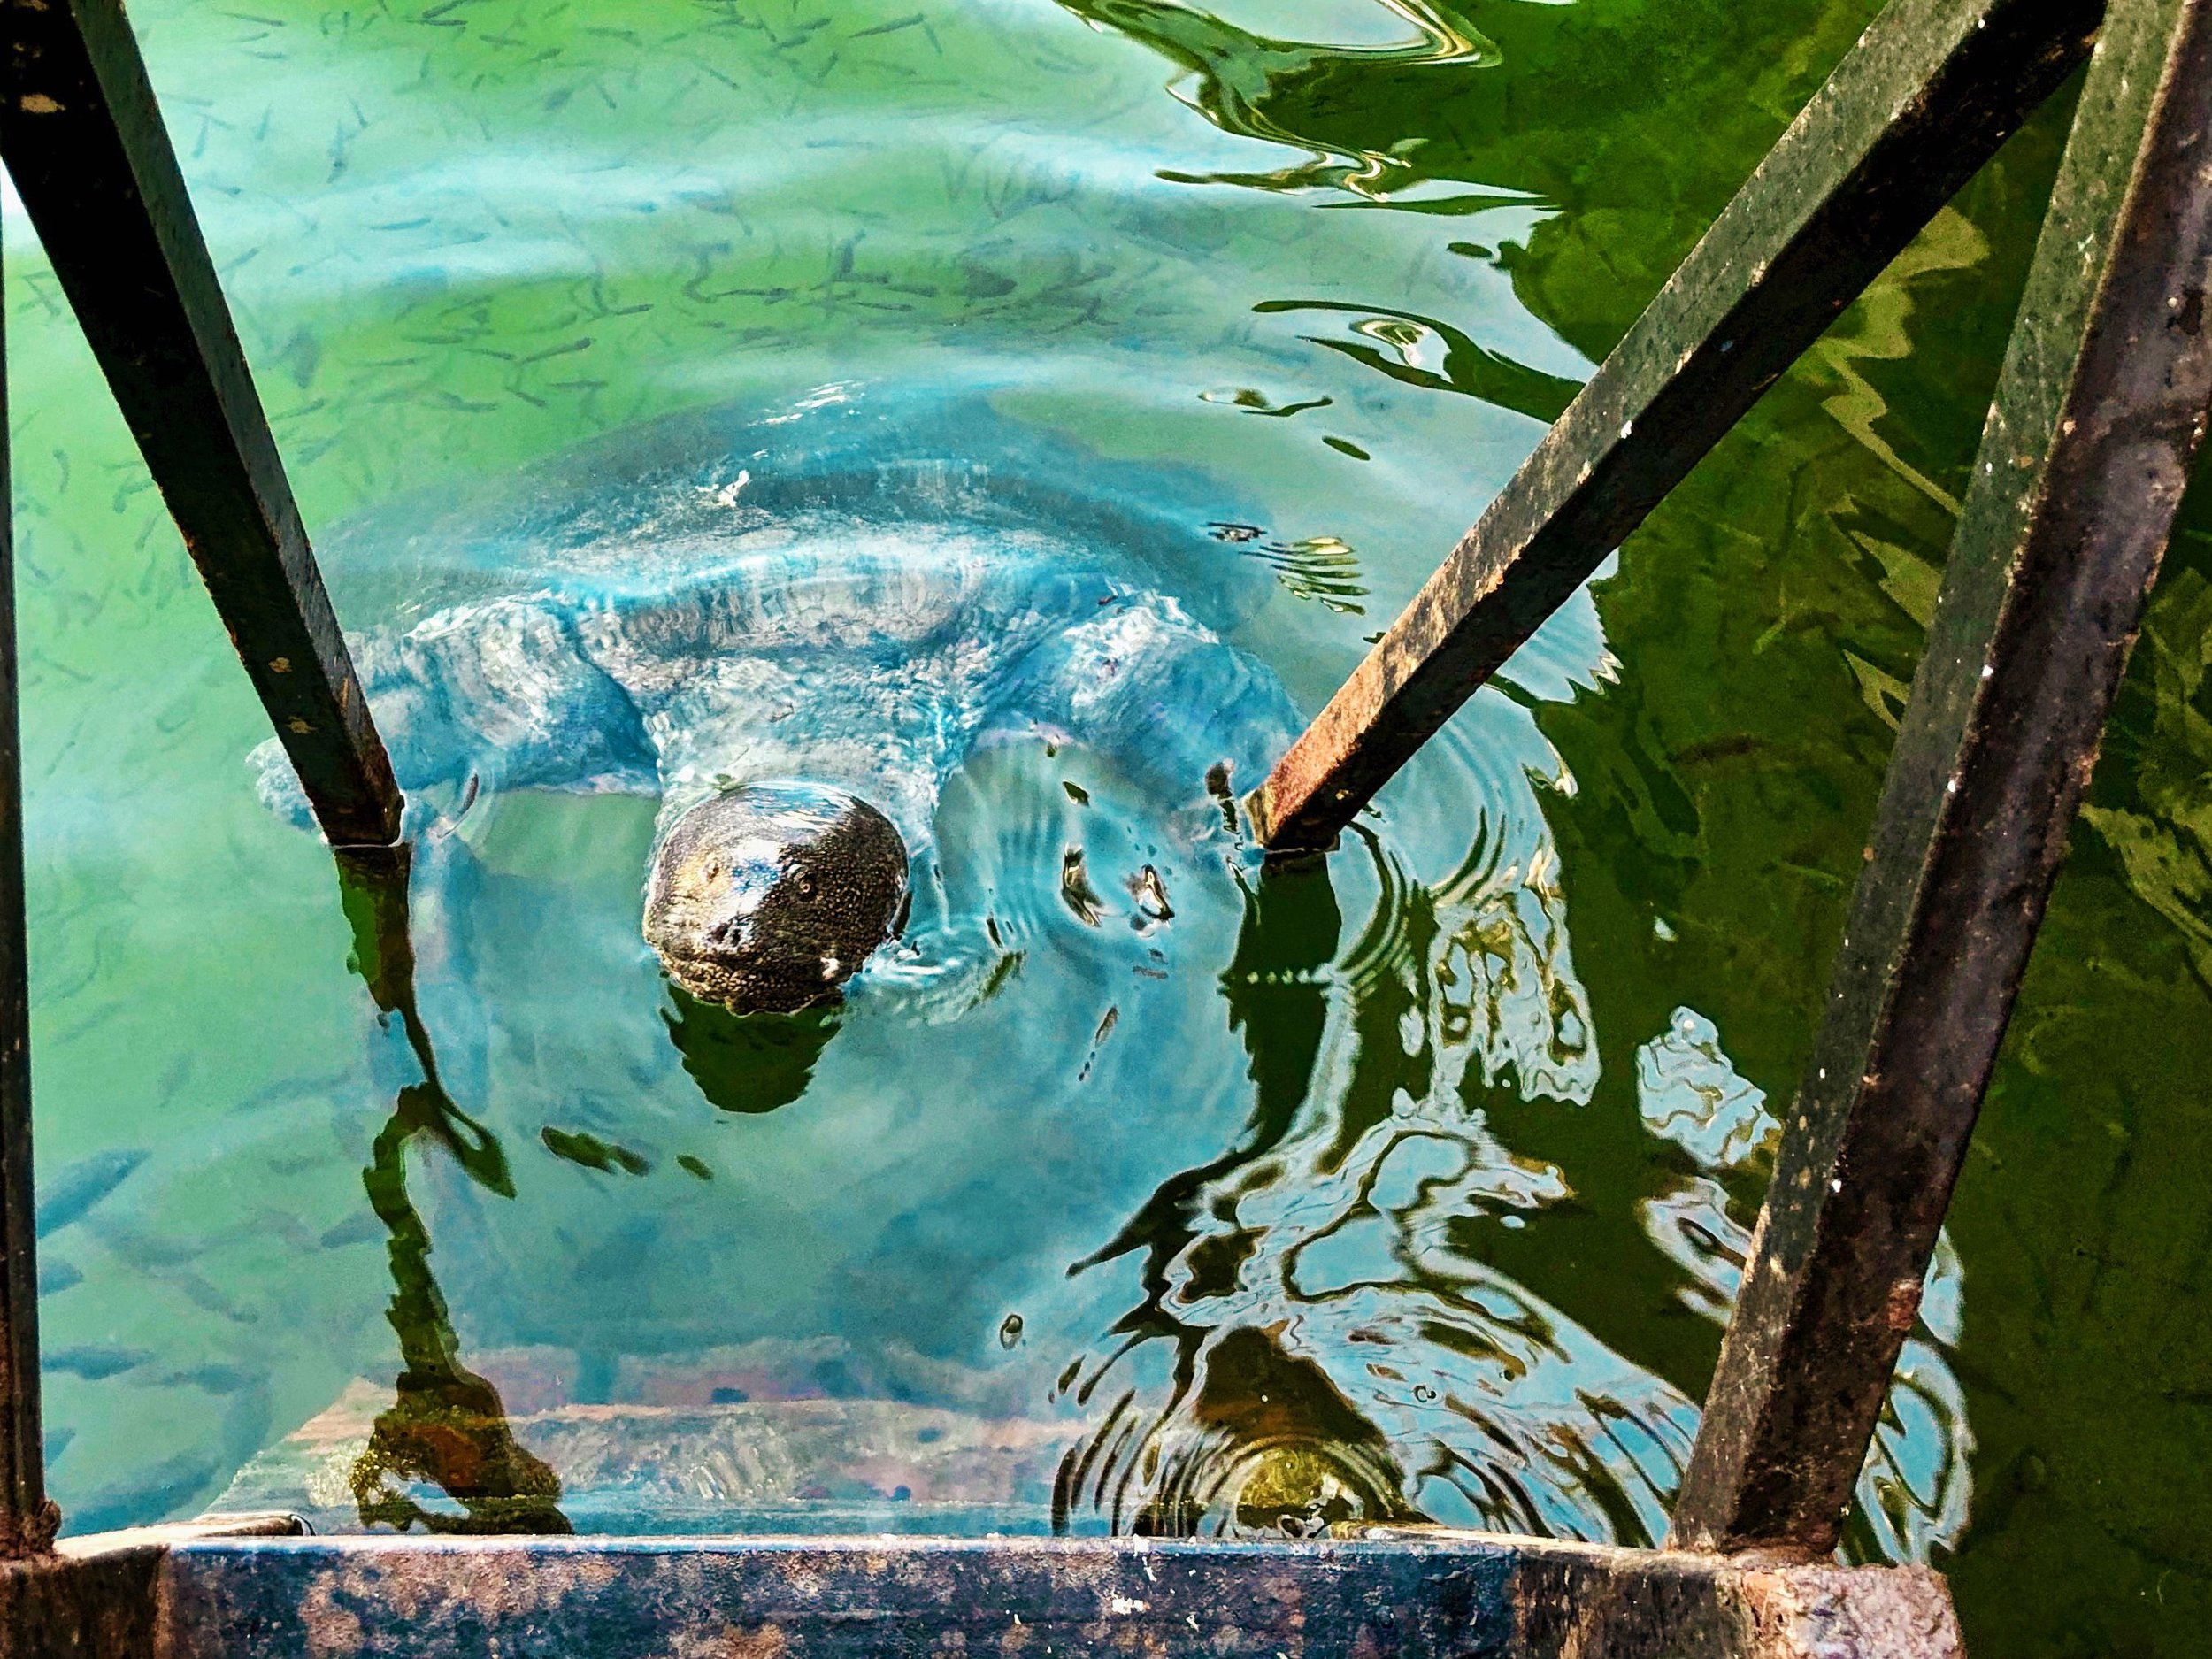 Nile Turtle in the Dalyan River #1